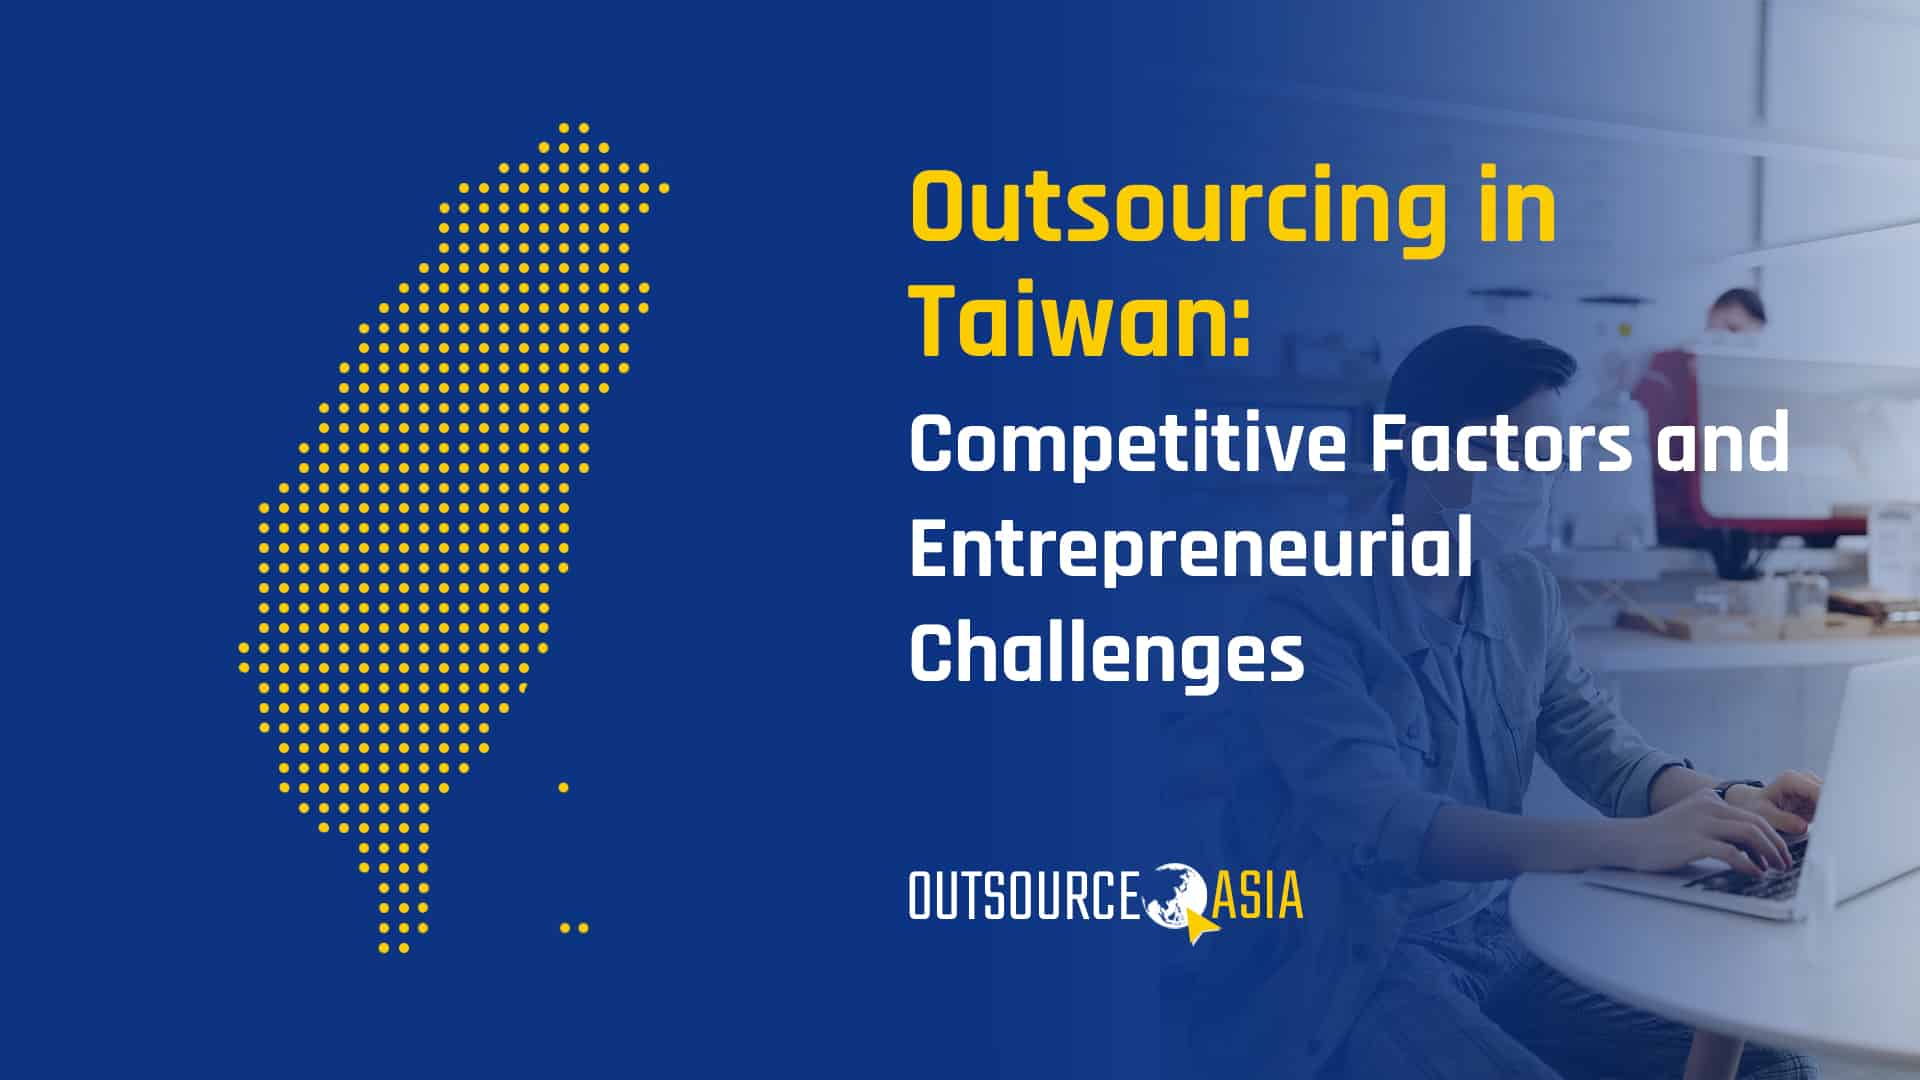 Outsourcing in Taiwan